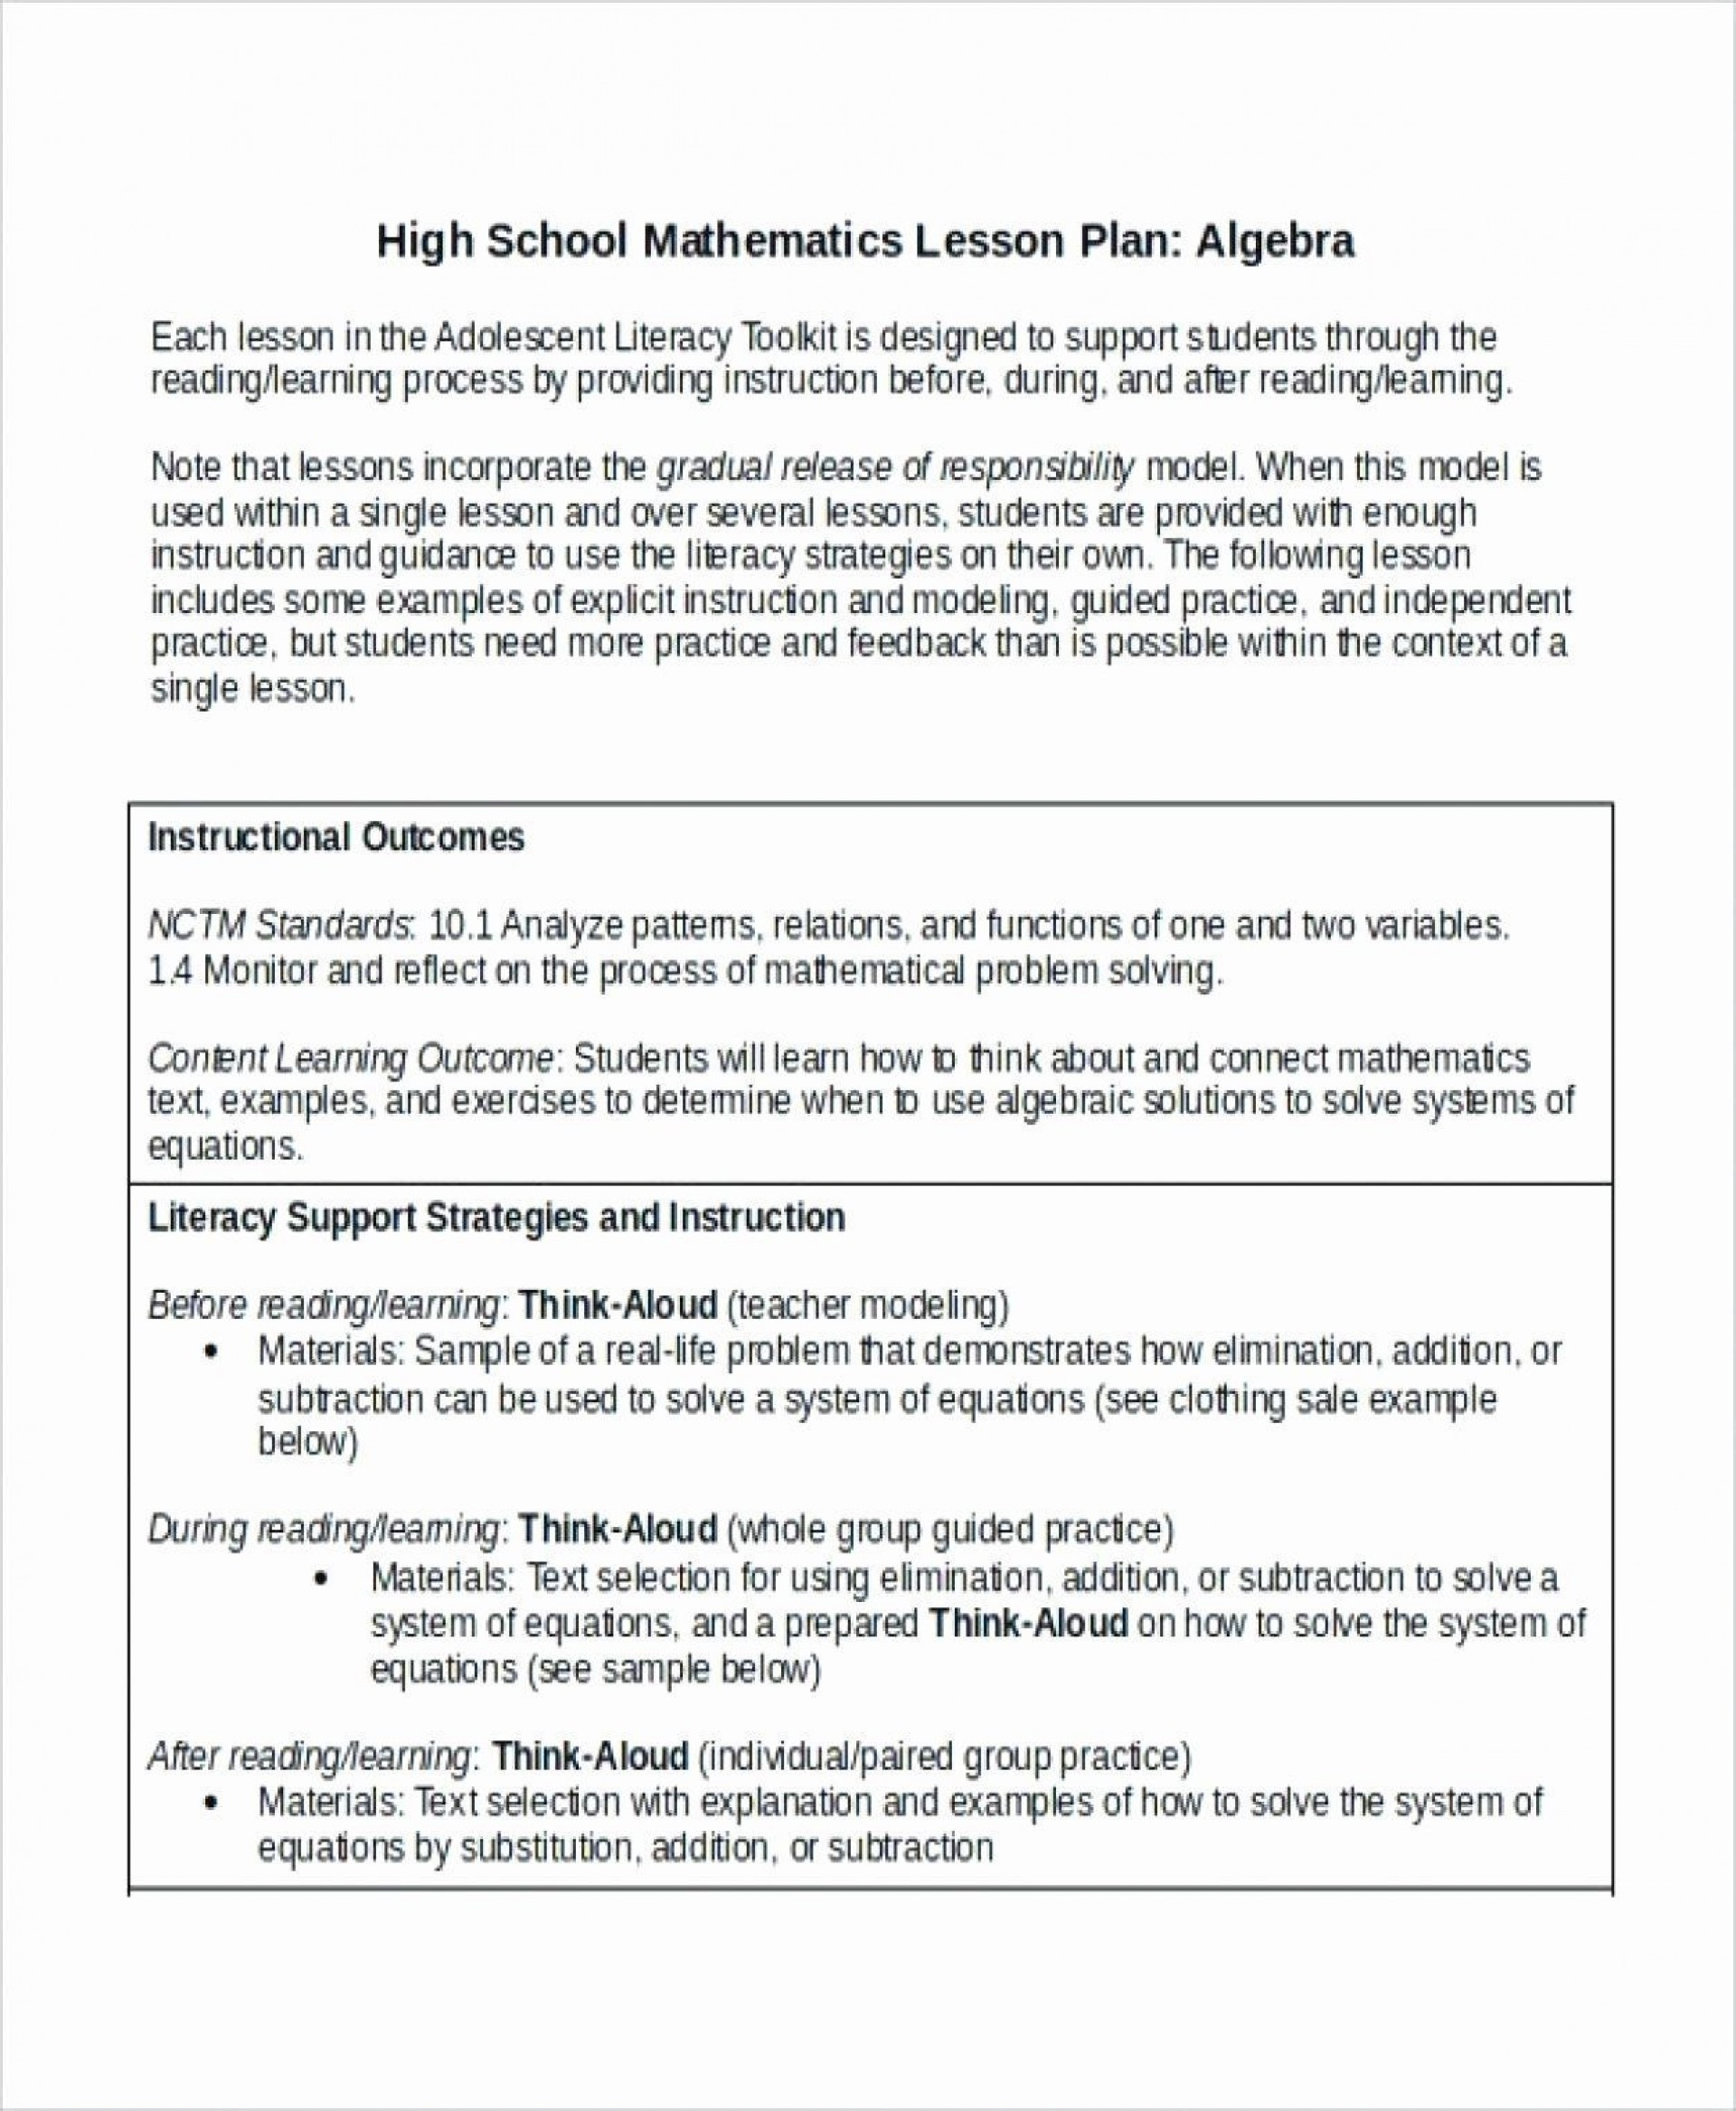 000 Archaicawful Lesson Plan Template High School Math Inspiration  Example For Free1920